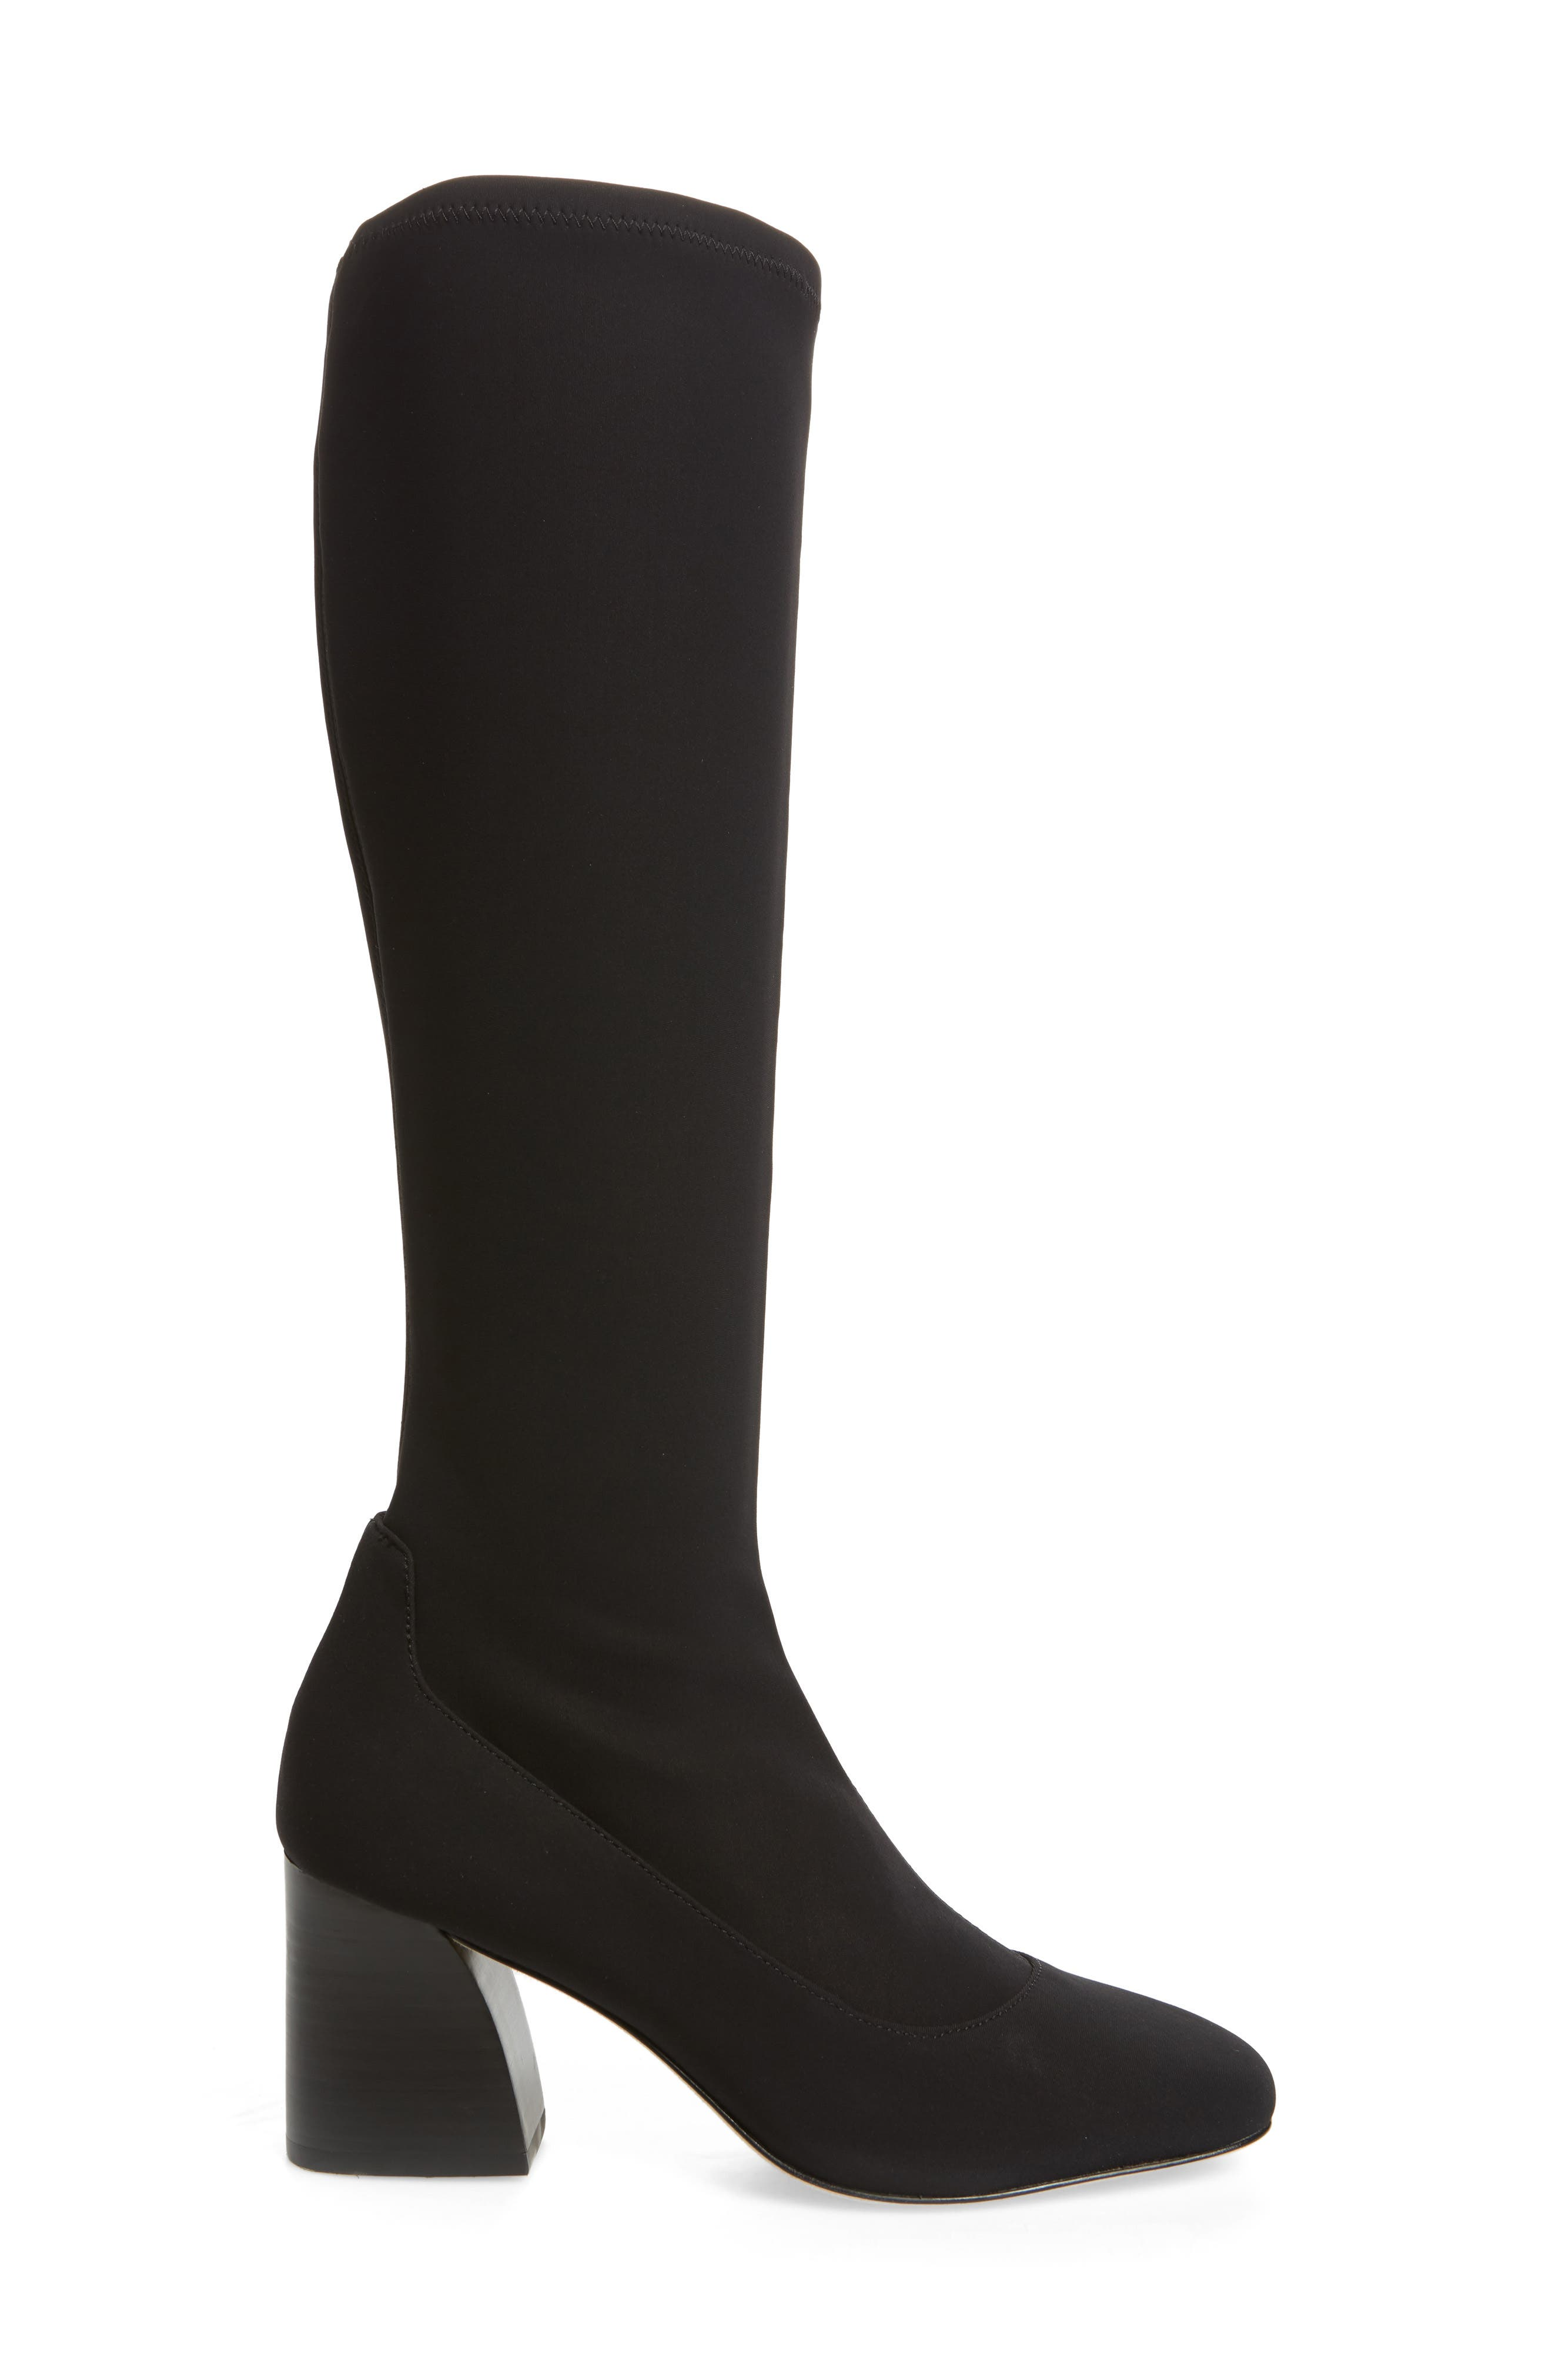 DONALD PLINER, Gerti Knee High Stretch Boot, Alternate thumbnail 3, color, 001